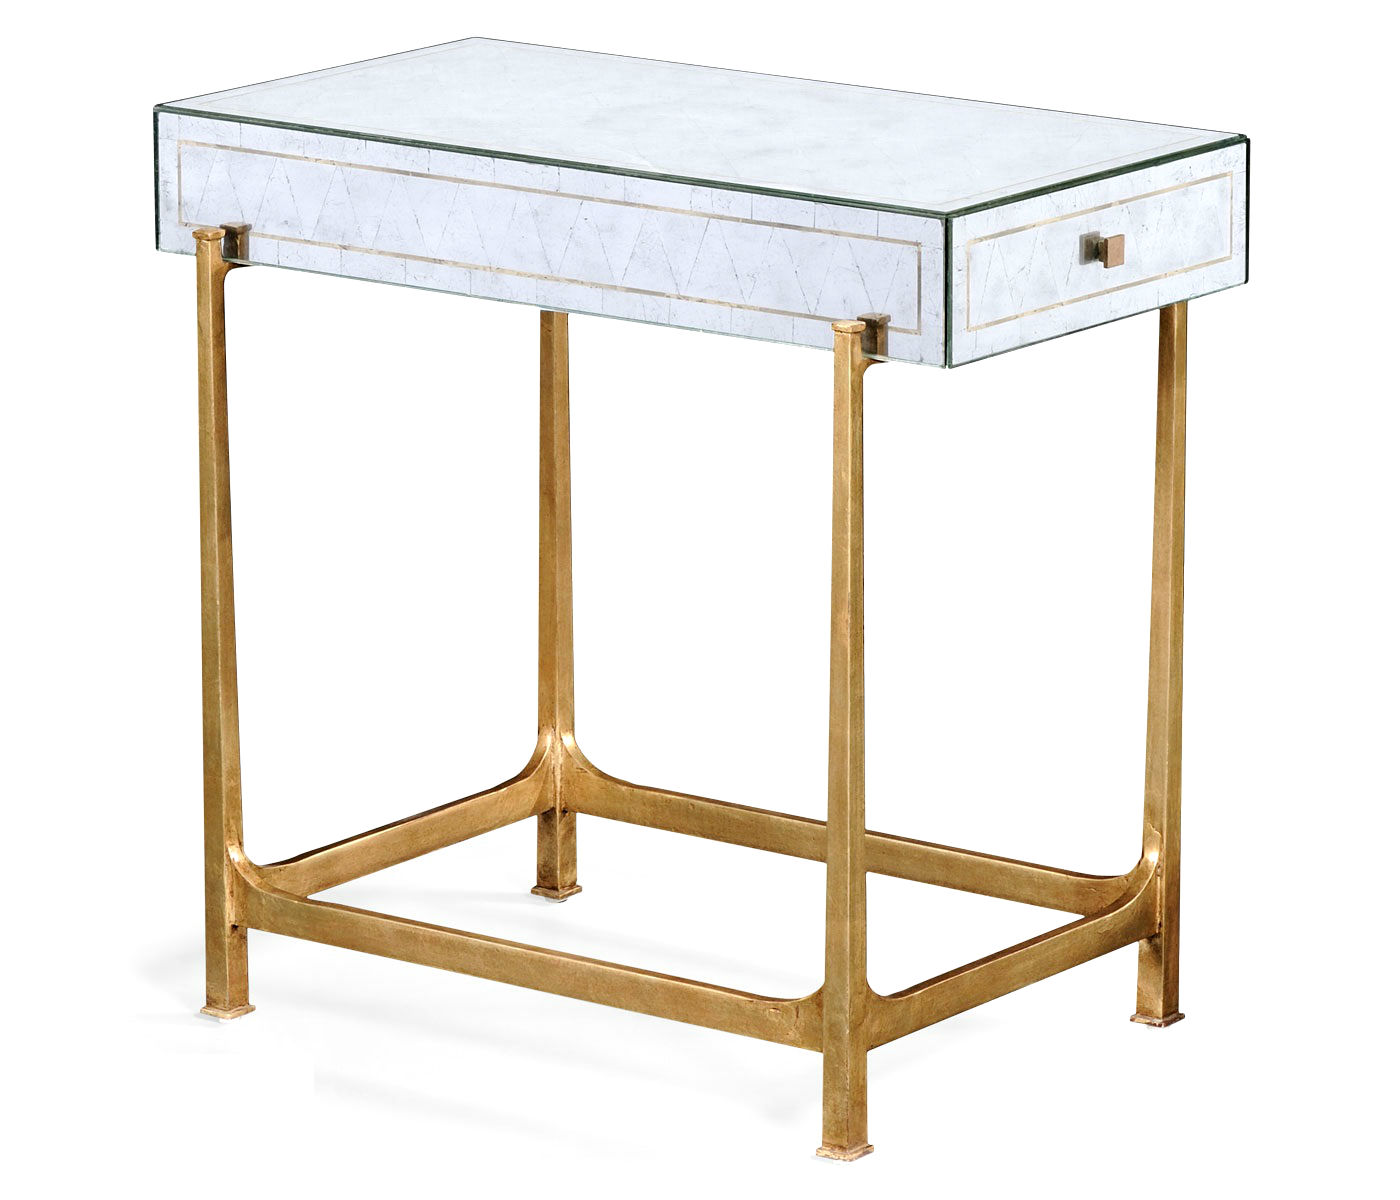 eglomise side table end accent tables tall living room elegant mirrored distressed gold gilded partner coffee console available hospitality residential moon chair target counter